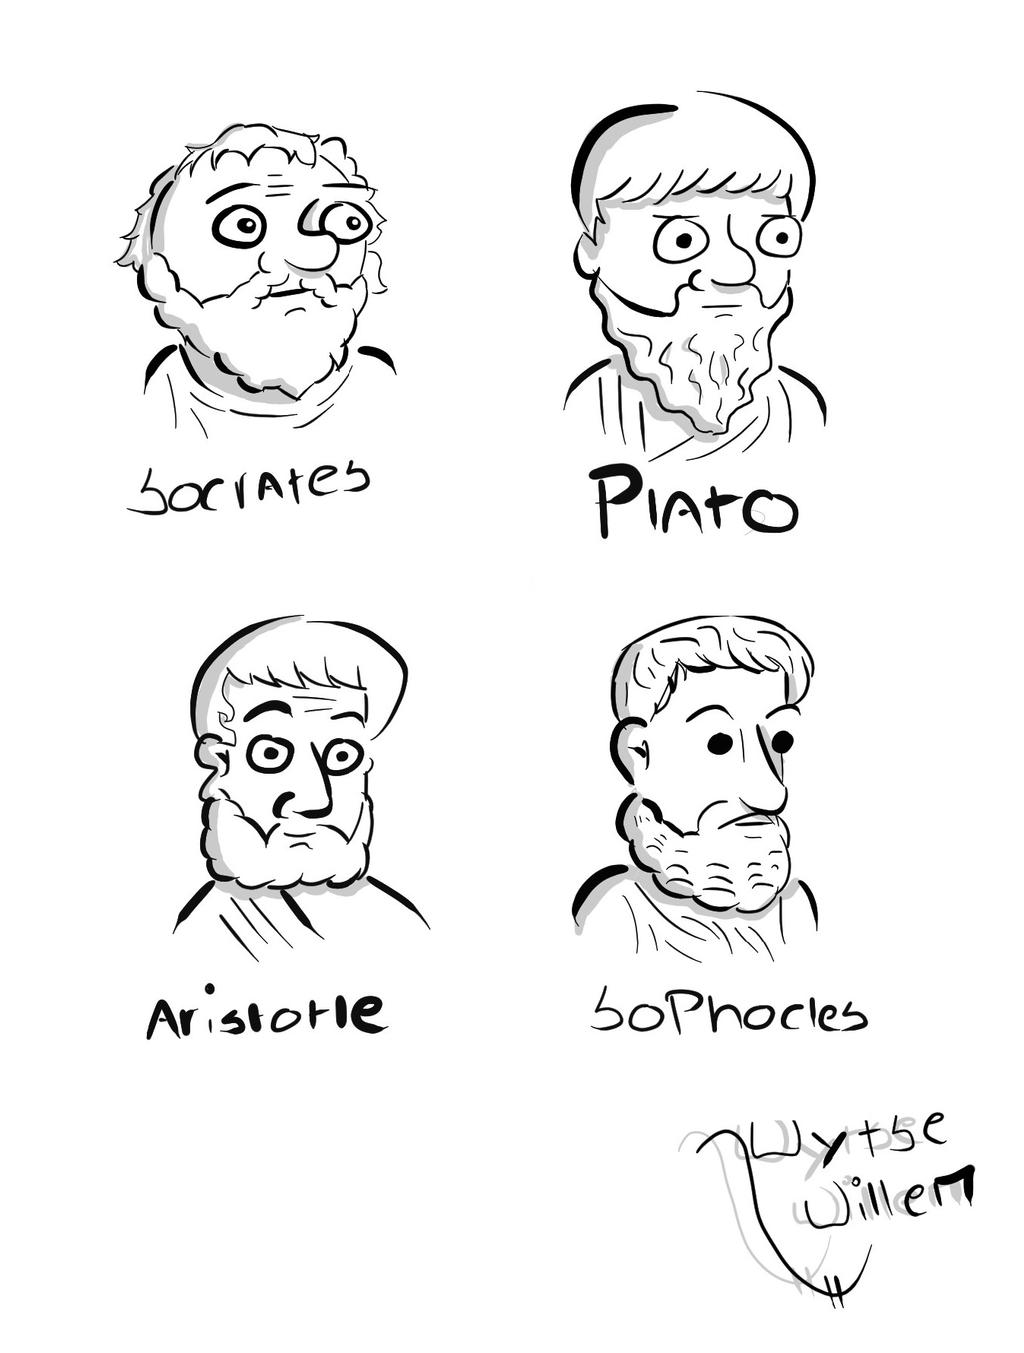 Socrates, Plato, Aristotle and Sophocles. by wytsewillem ...